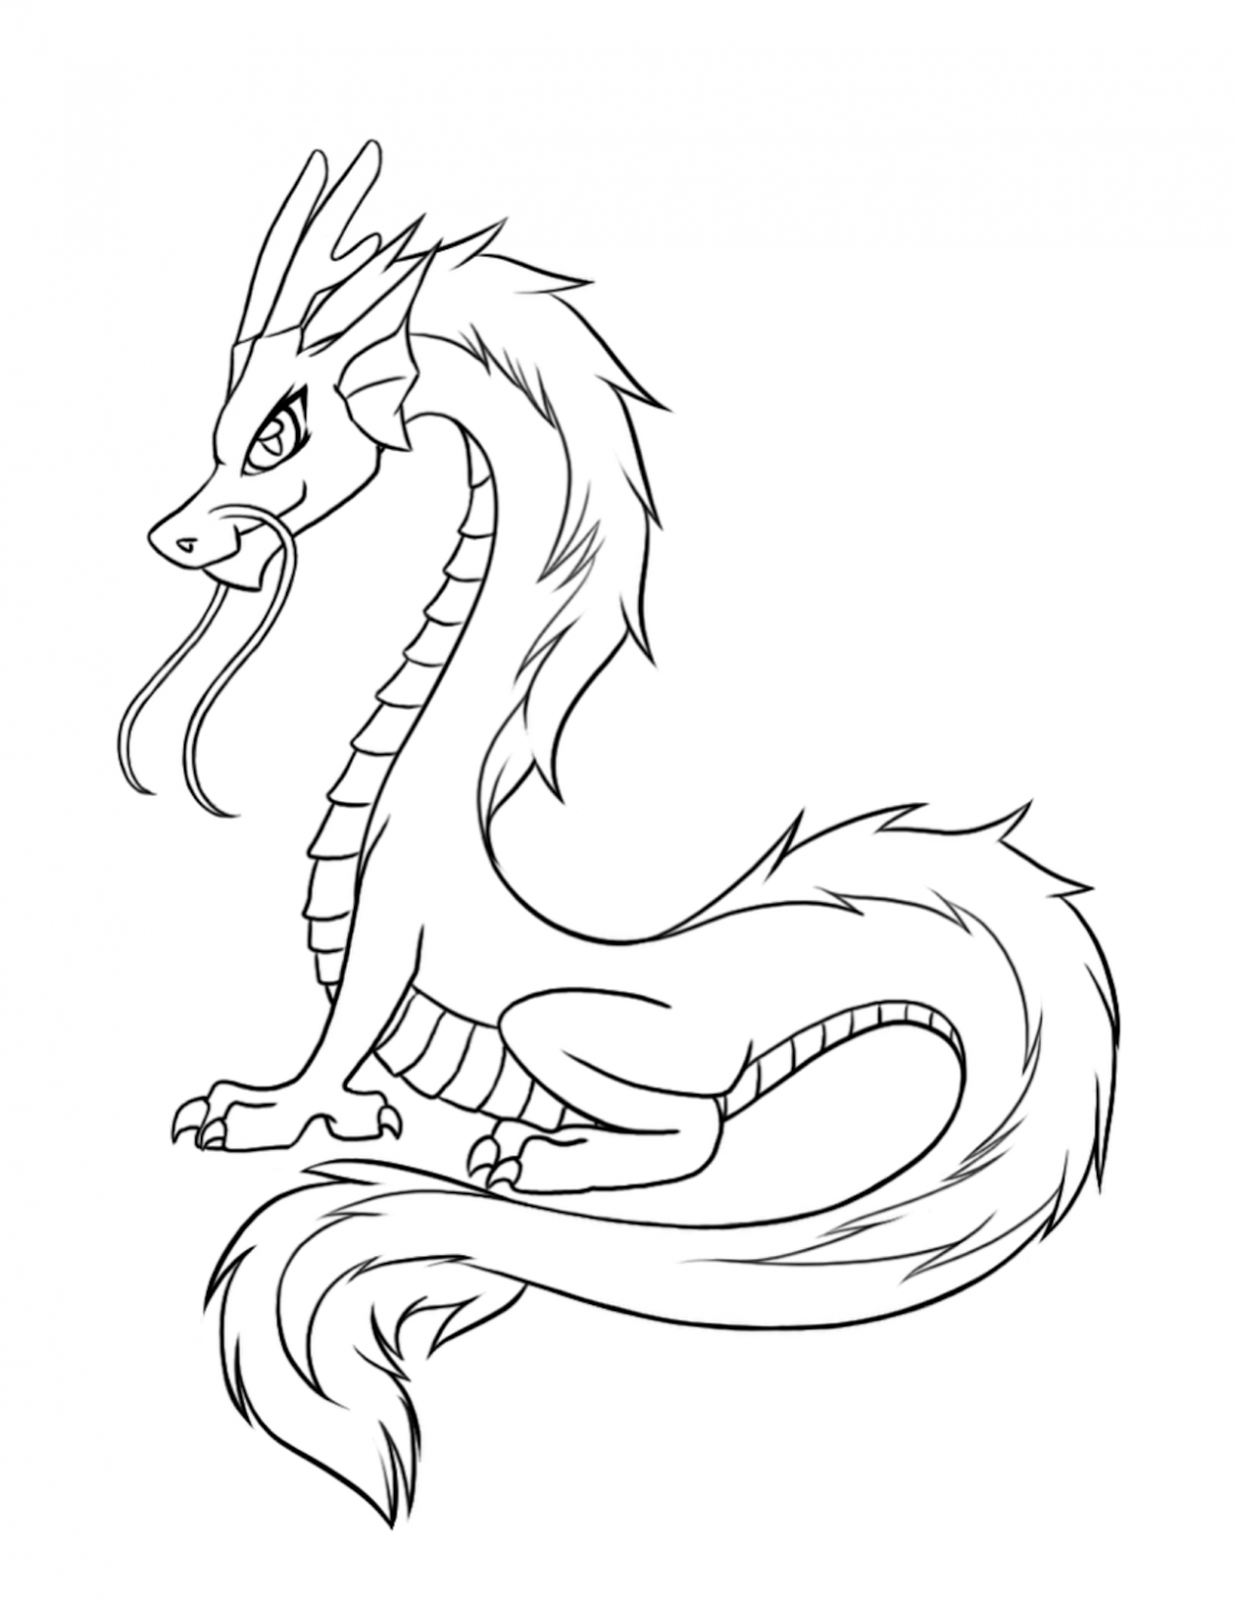 coloring pages chinese dragon dragon coloring pages kidsuki chinese pages coloring dragon